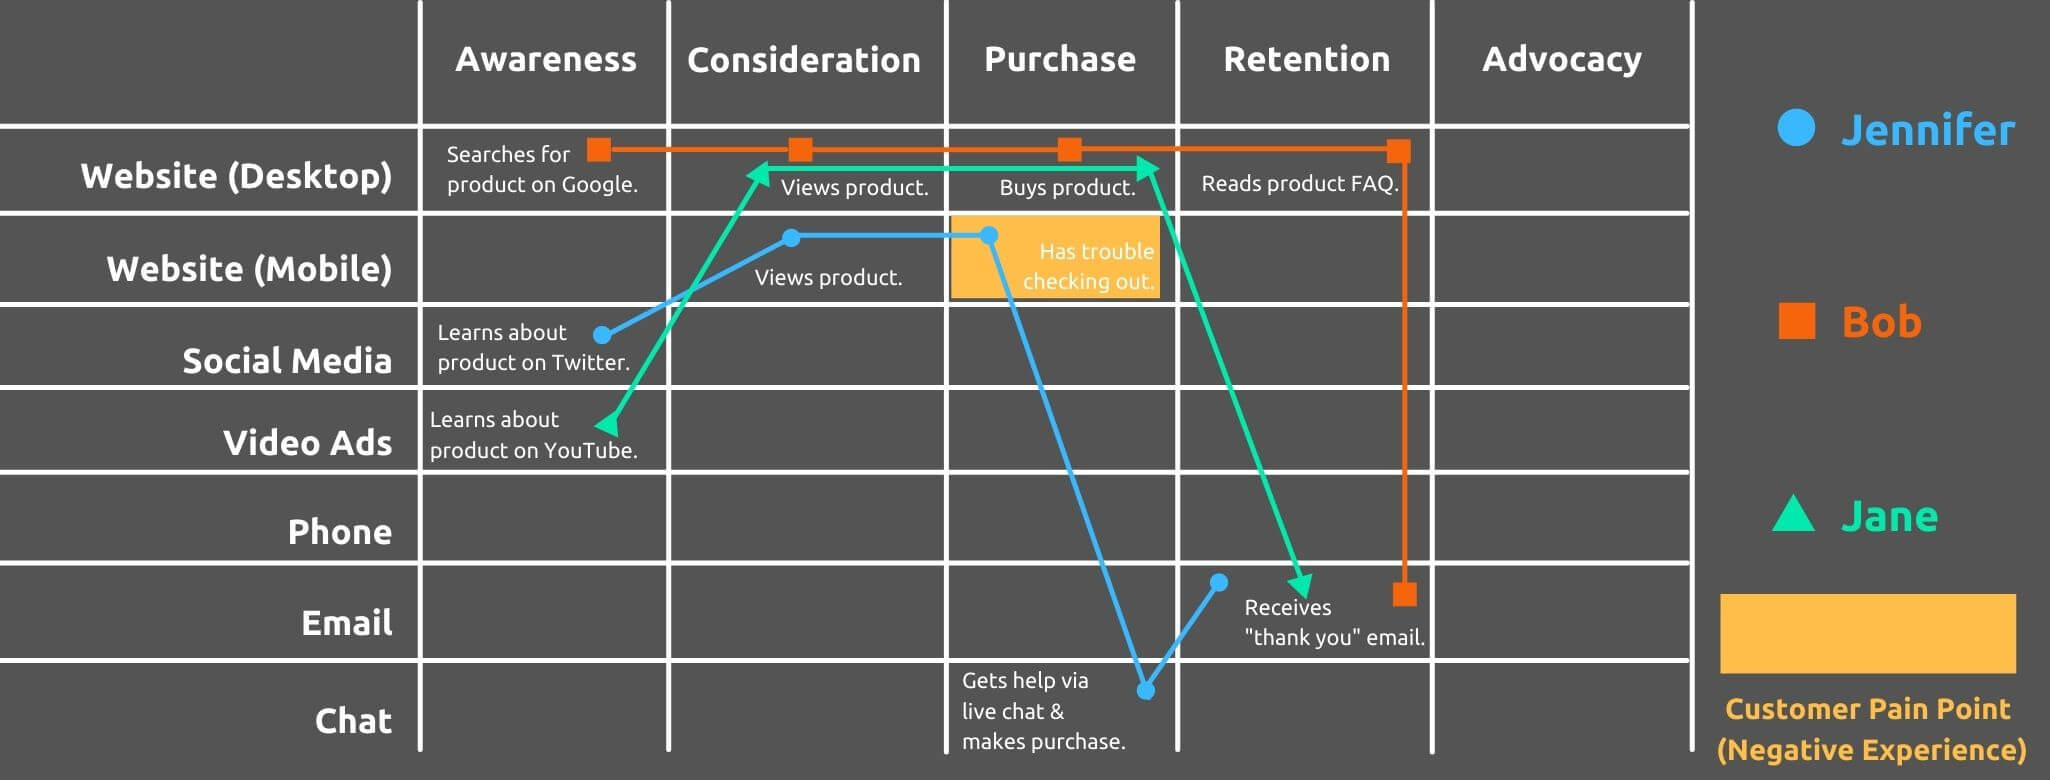 Encourage Customer Retention - How to Create a Customer Journey Map - Replyco Helpdesk Software for eCommerce